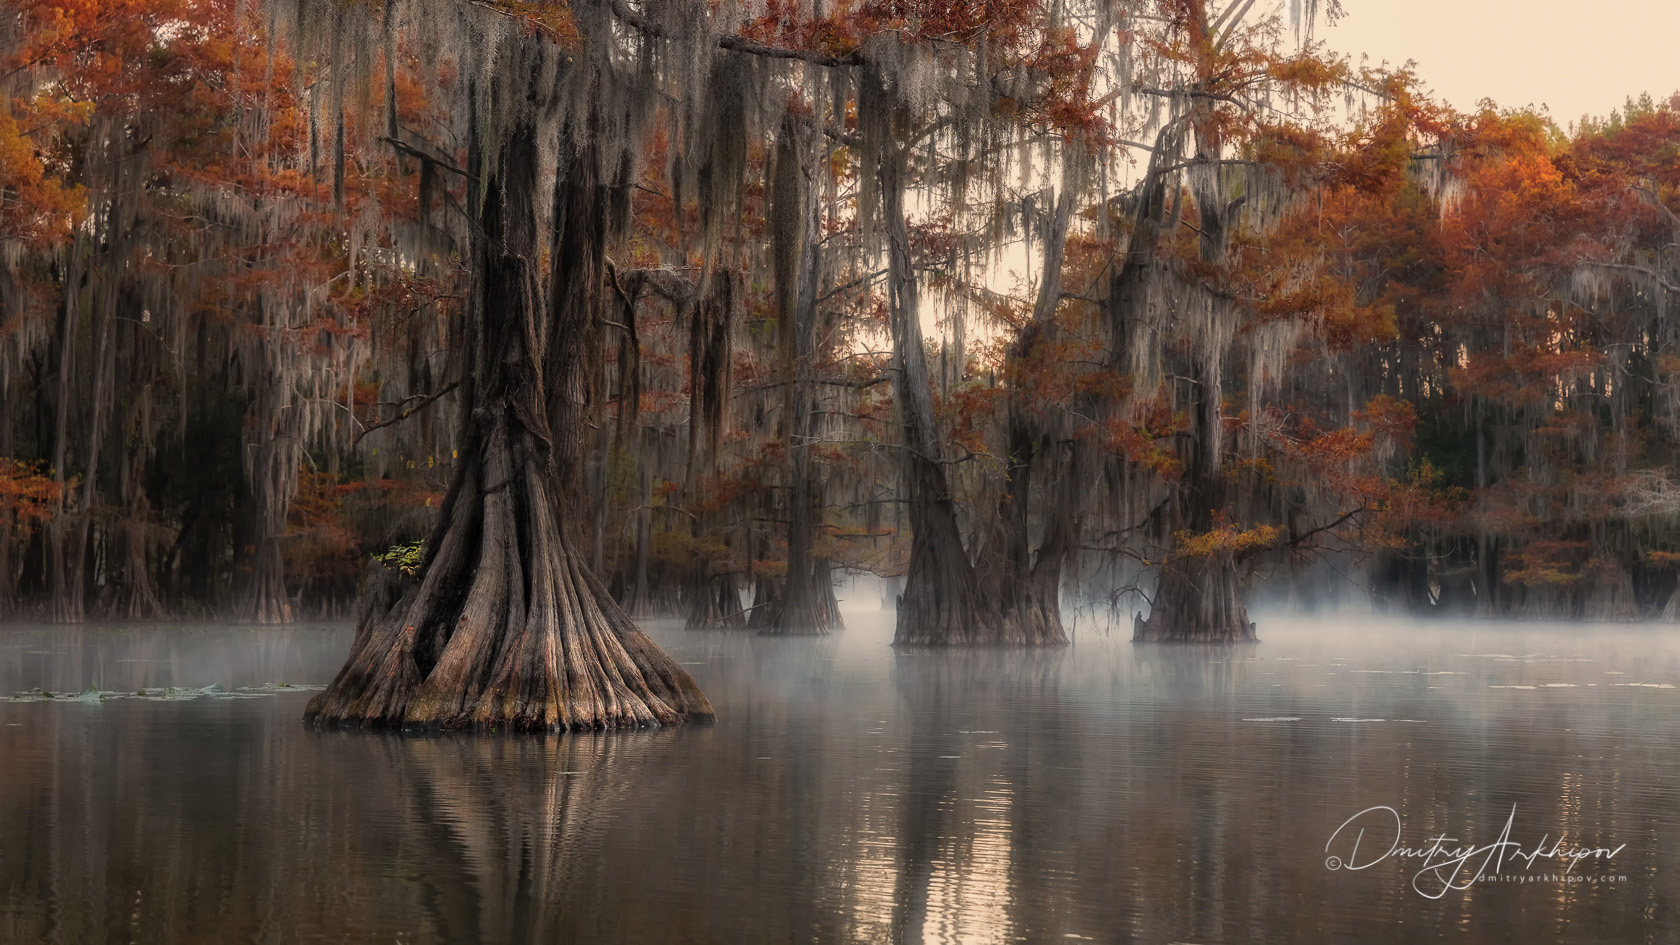 Photoexpedition to the Cypress Swamps. USA